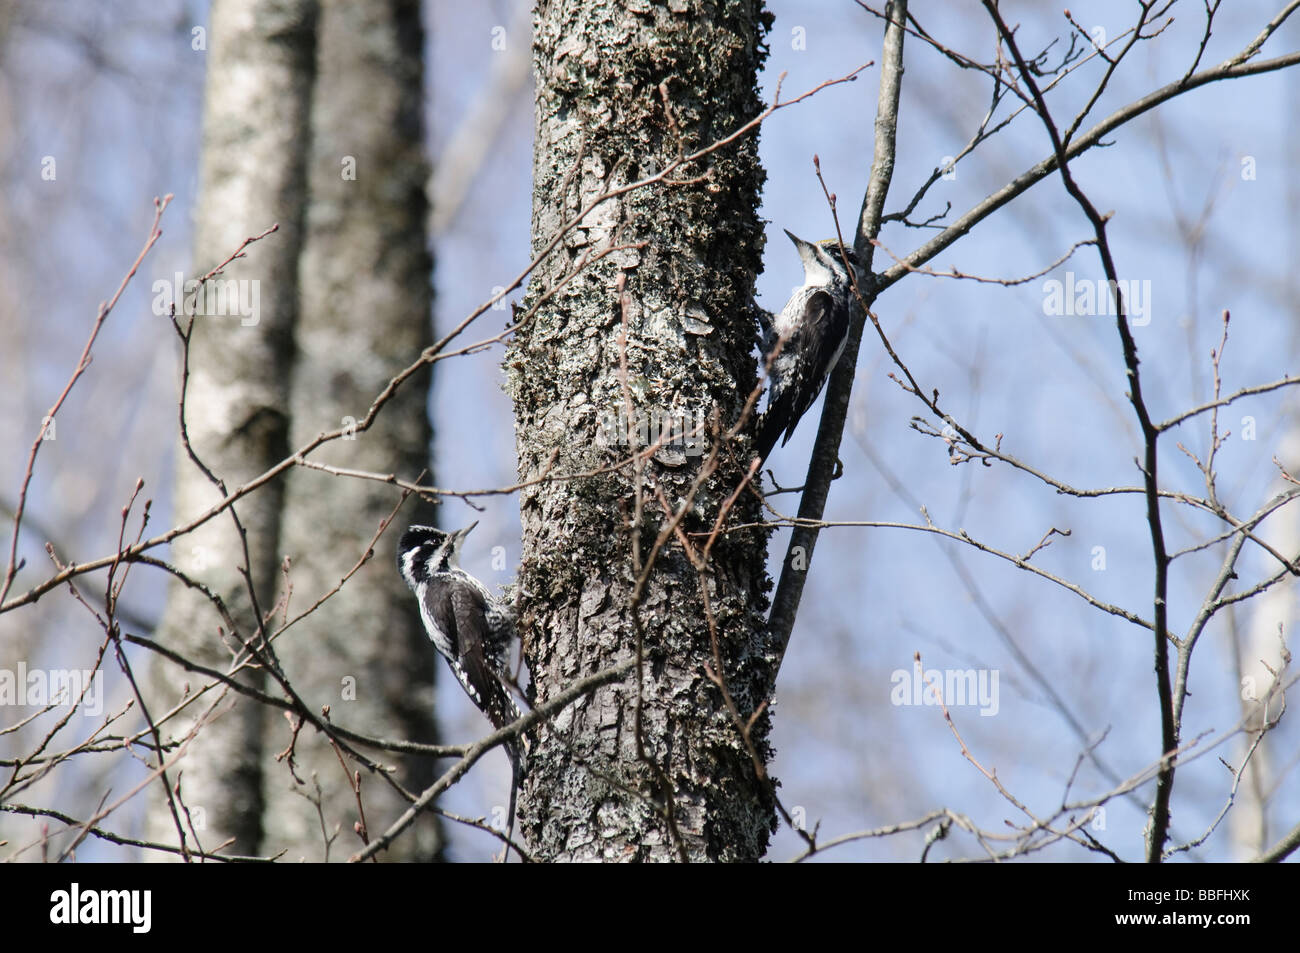 A pair of Three-toed Woodpeckers Picoides tridactylus  on a tree trunk - Stock Image